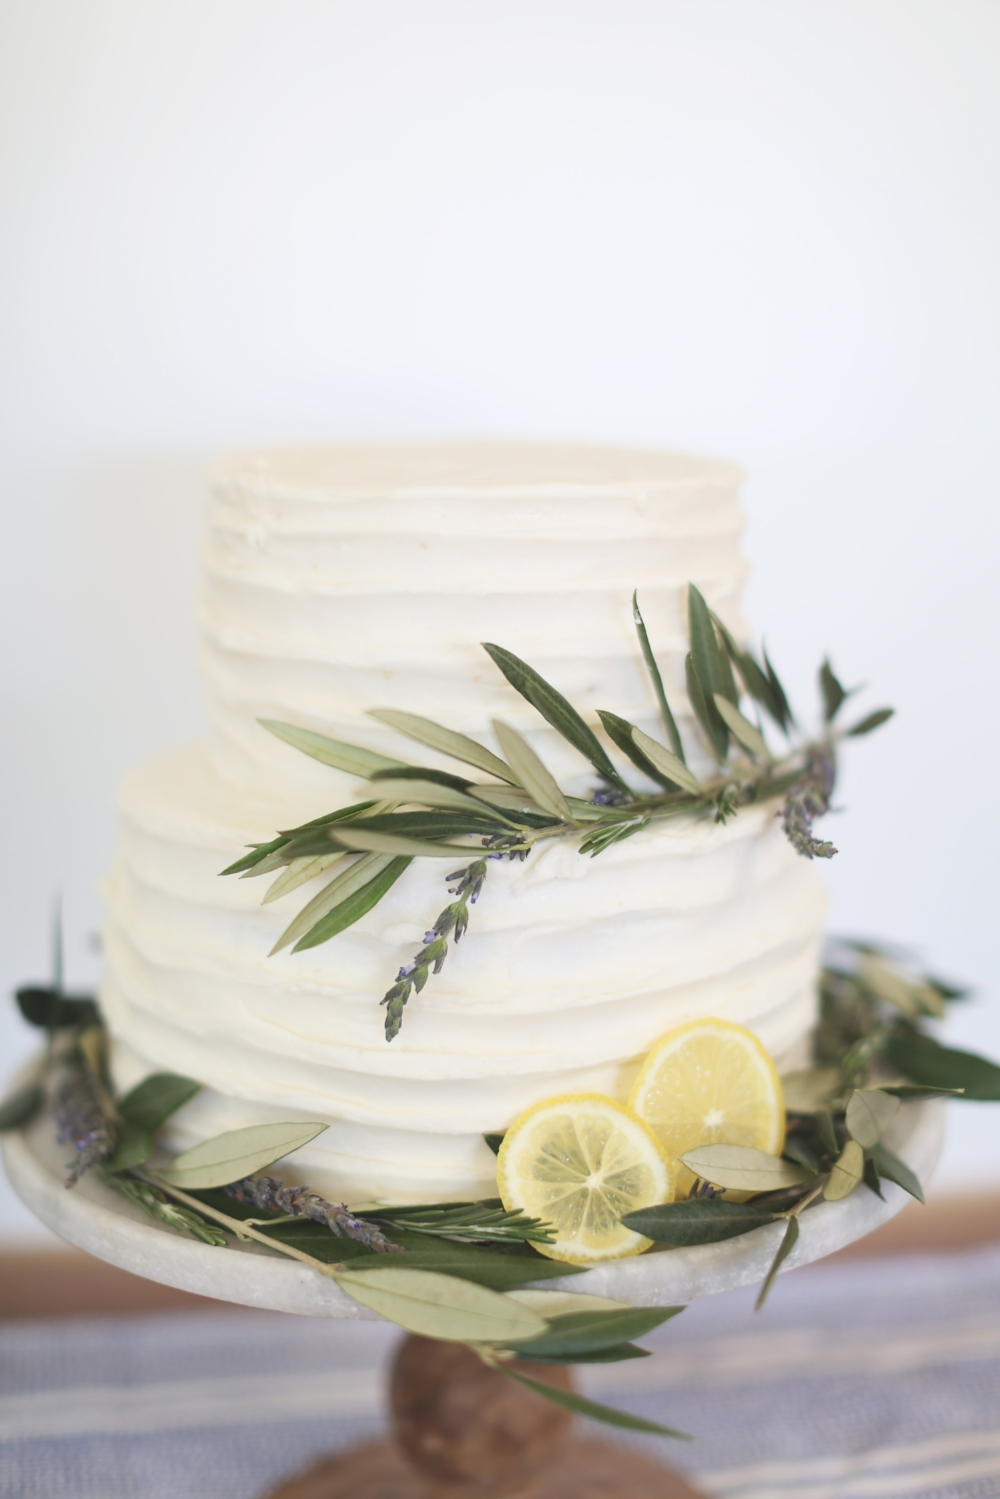 Lemon Lavender Tiered Cake                                                                                                                                                                                    Photo Credit Stacy Salvatori